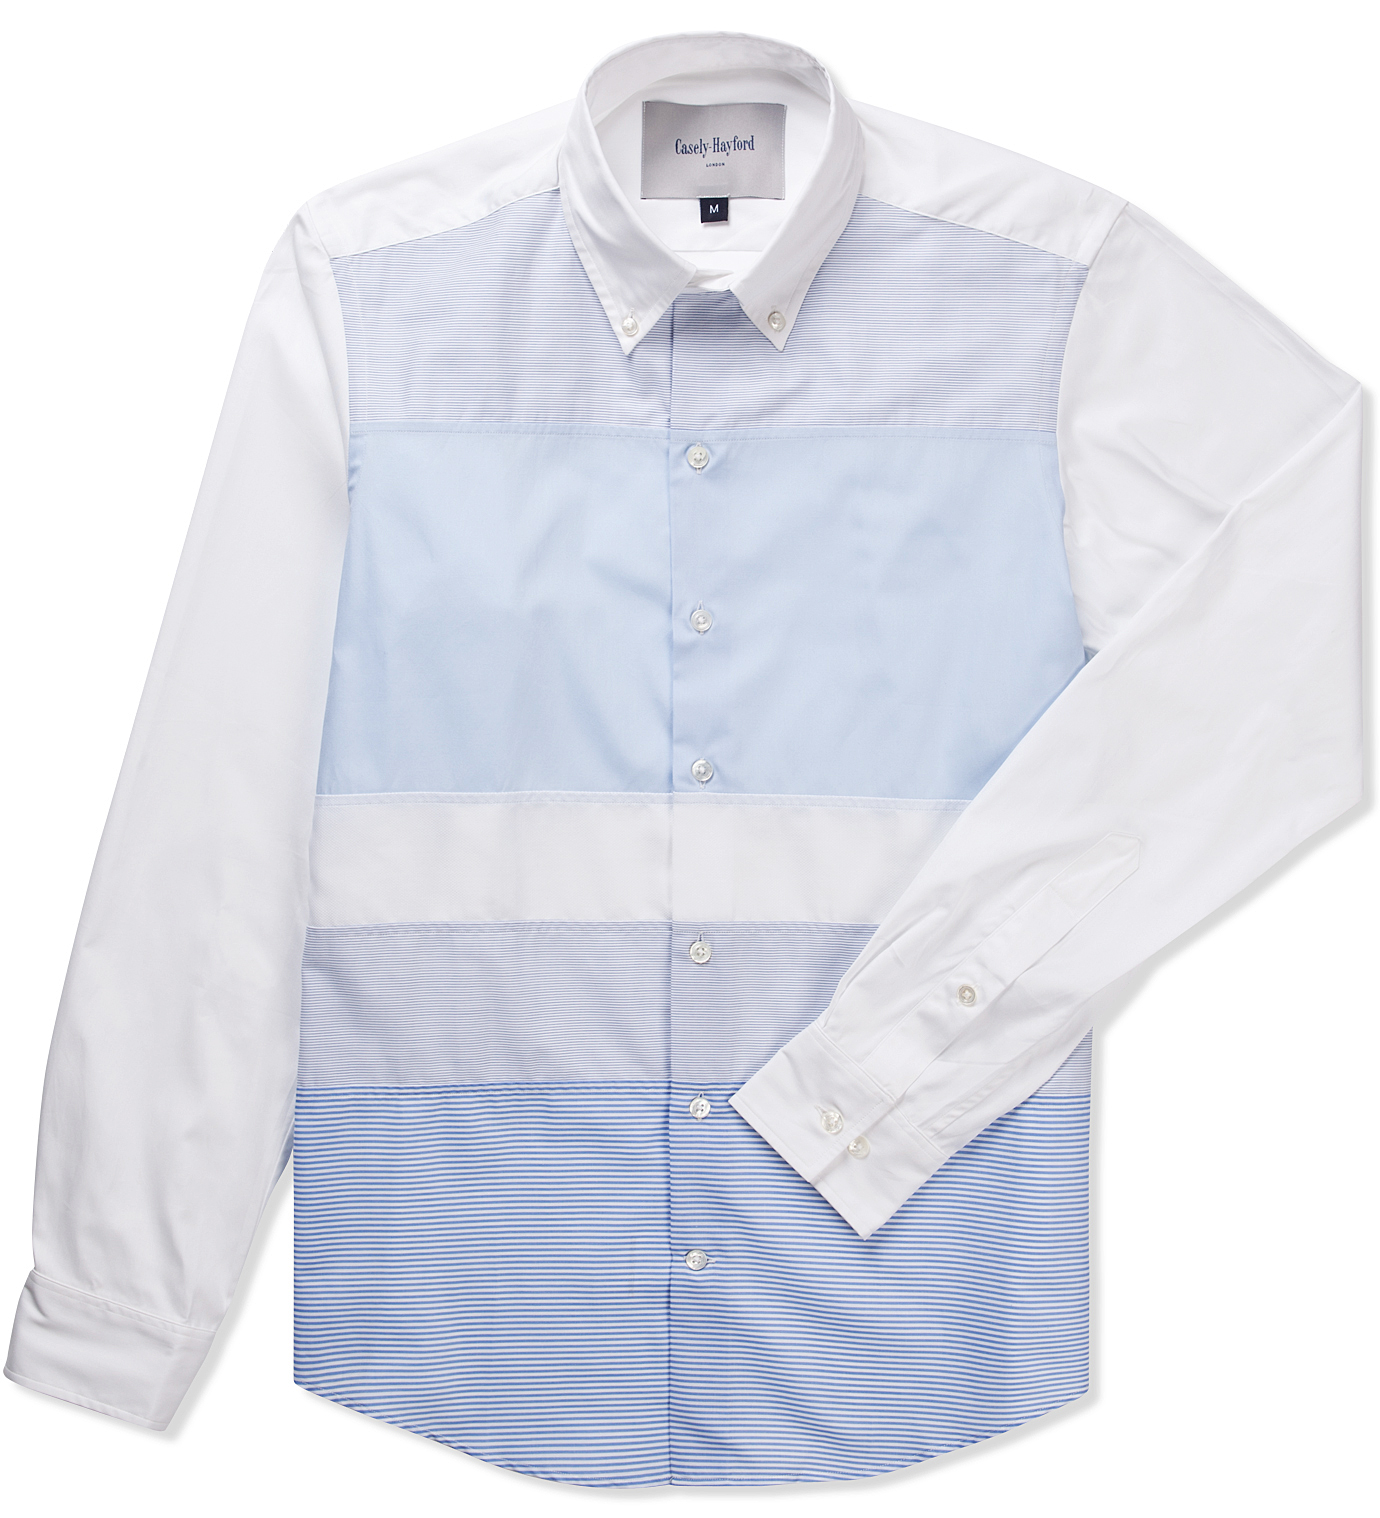 Casely Hayford Pale Blue Blue Stripe White Stanway Color